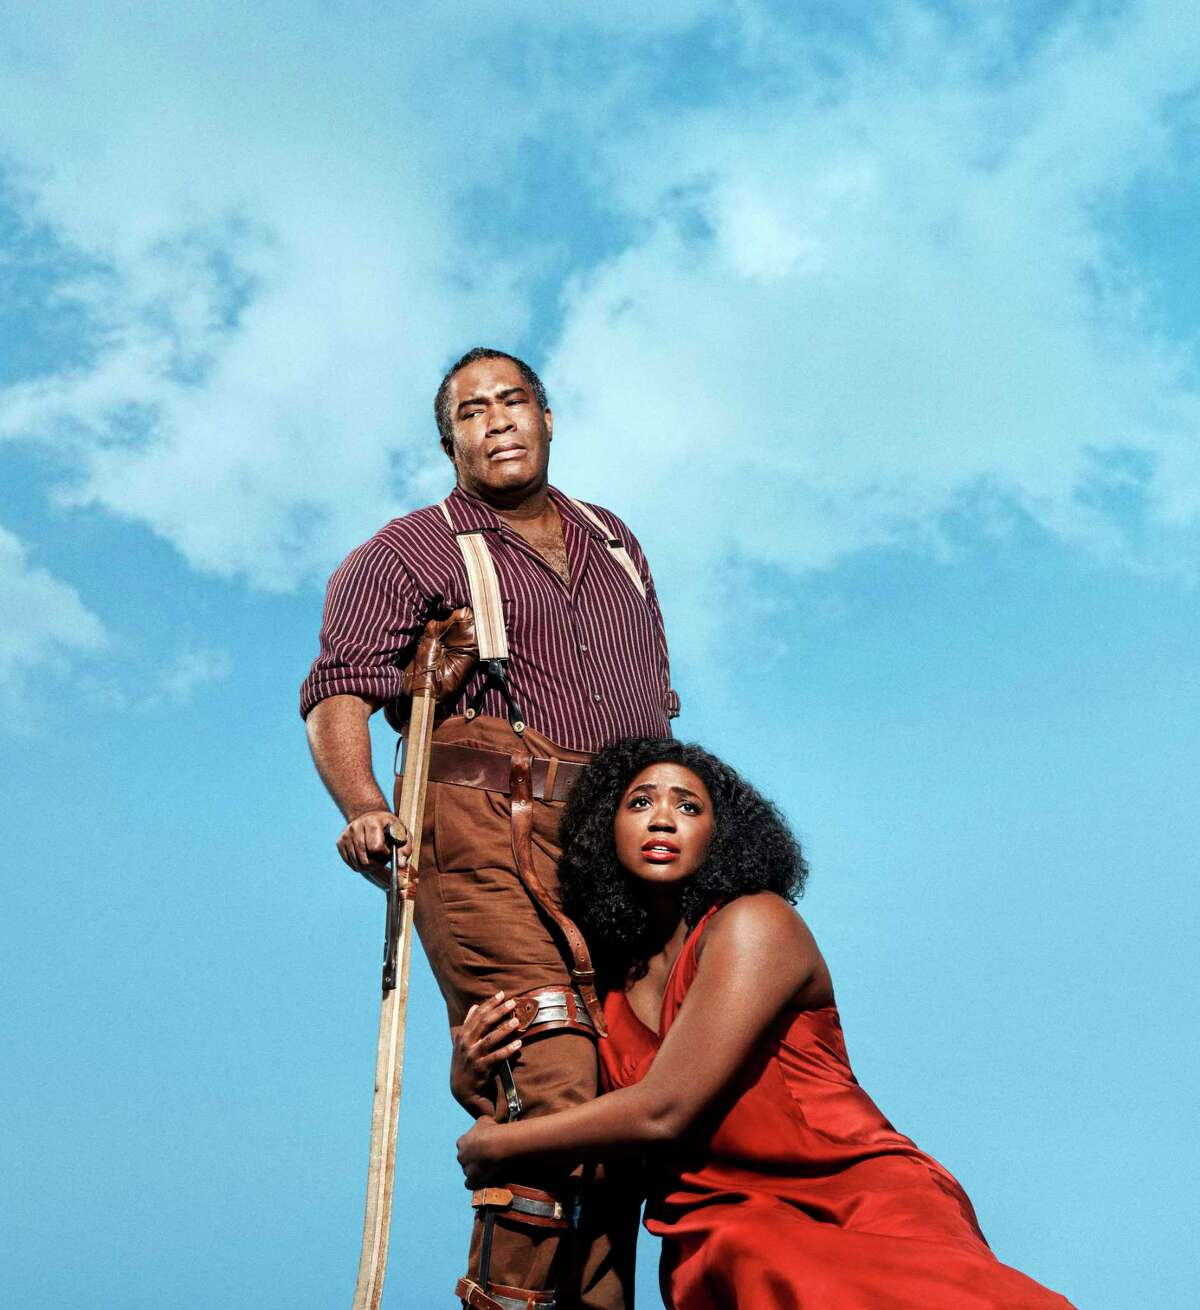 Porgy and Bess will be screened on Feb. 1 at 12:55 p.m. at the Ridgefield Playhouse, 80 East Ridge Road, Ridgefield. Tickets are $15-$25. For more information, visit ridgefieldplayhouse.org.